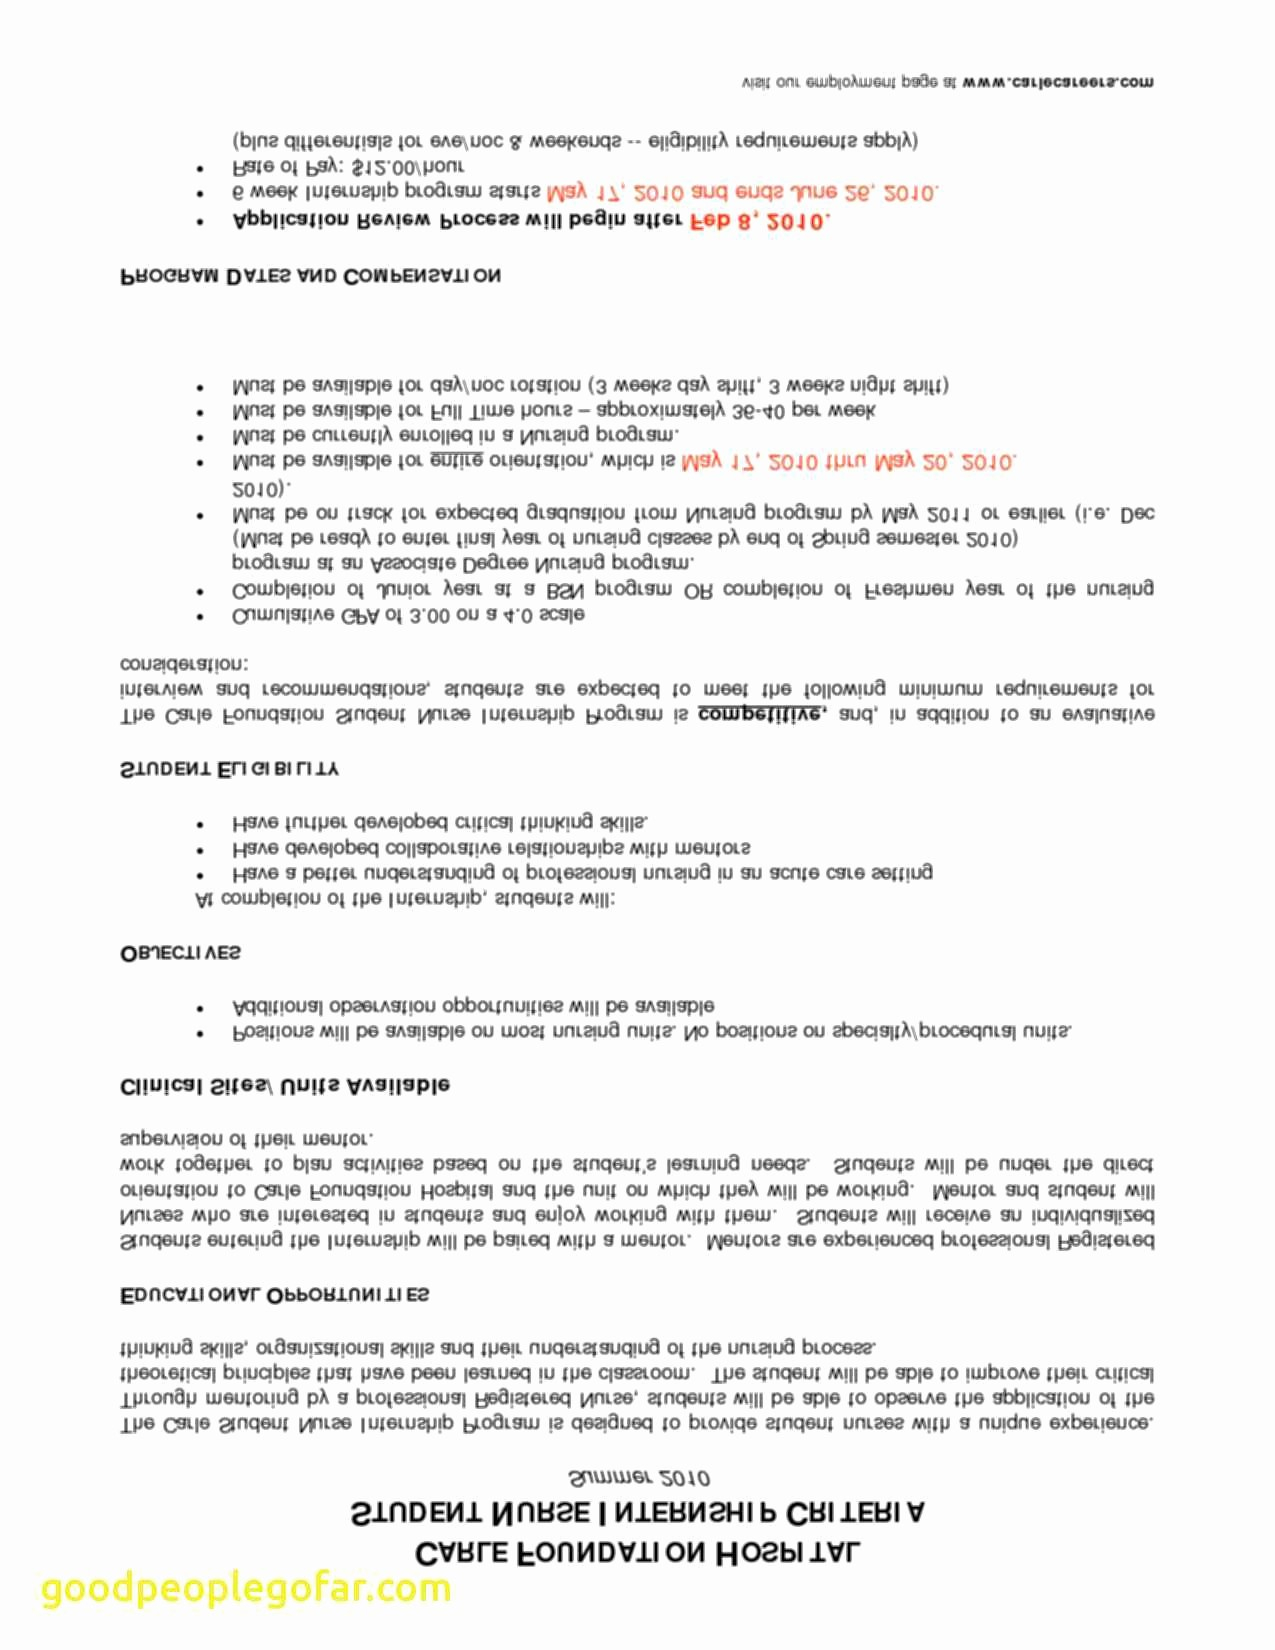 Inbound Call Center Job Description for Resume - Inbound Call Center Job Description for Resume